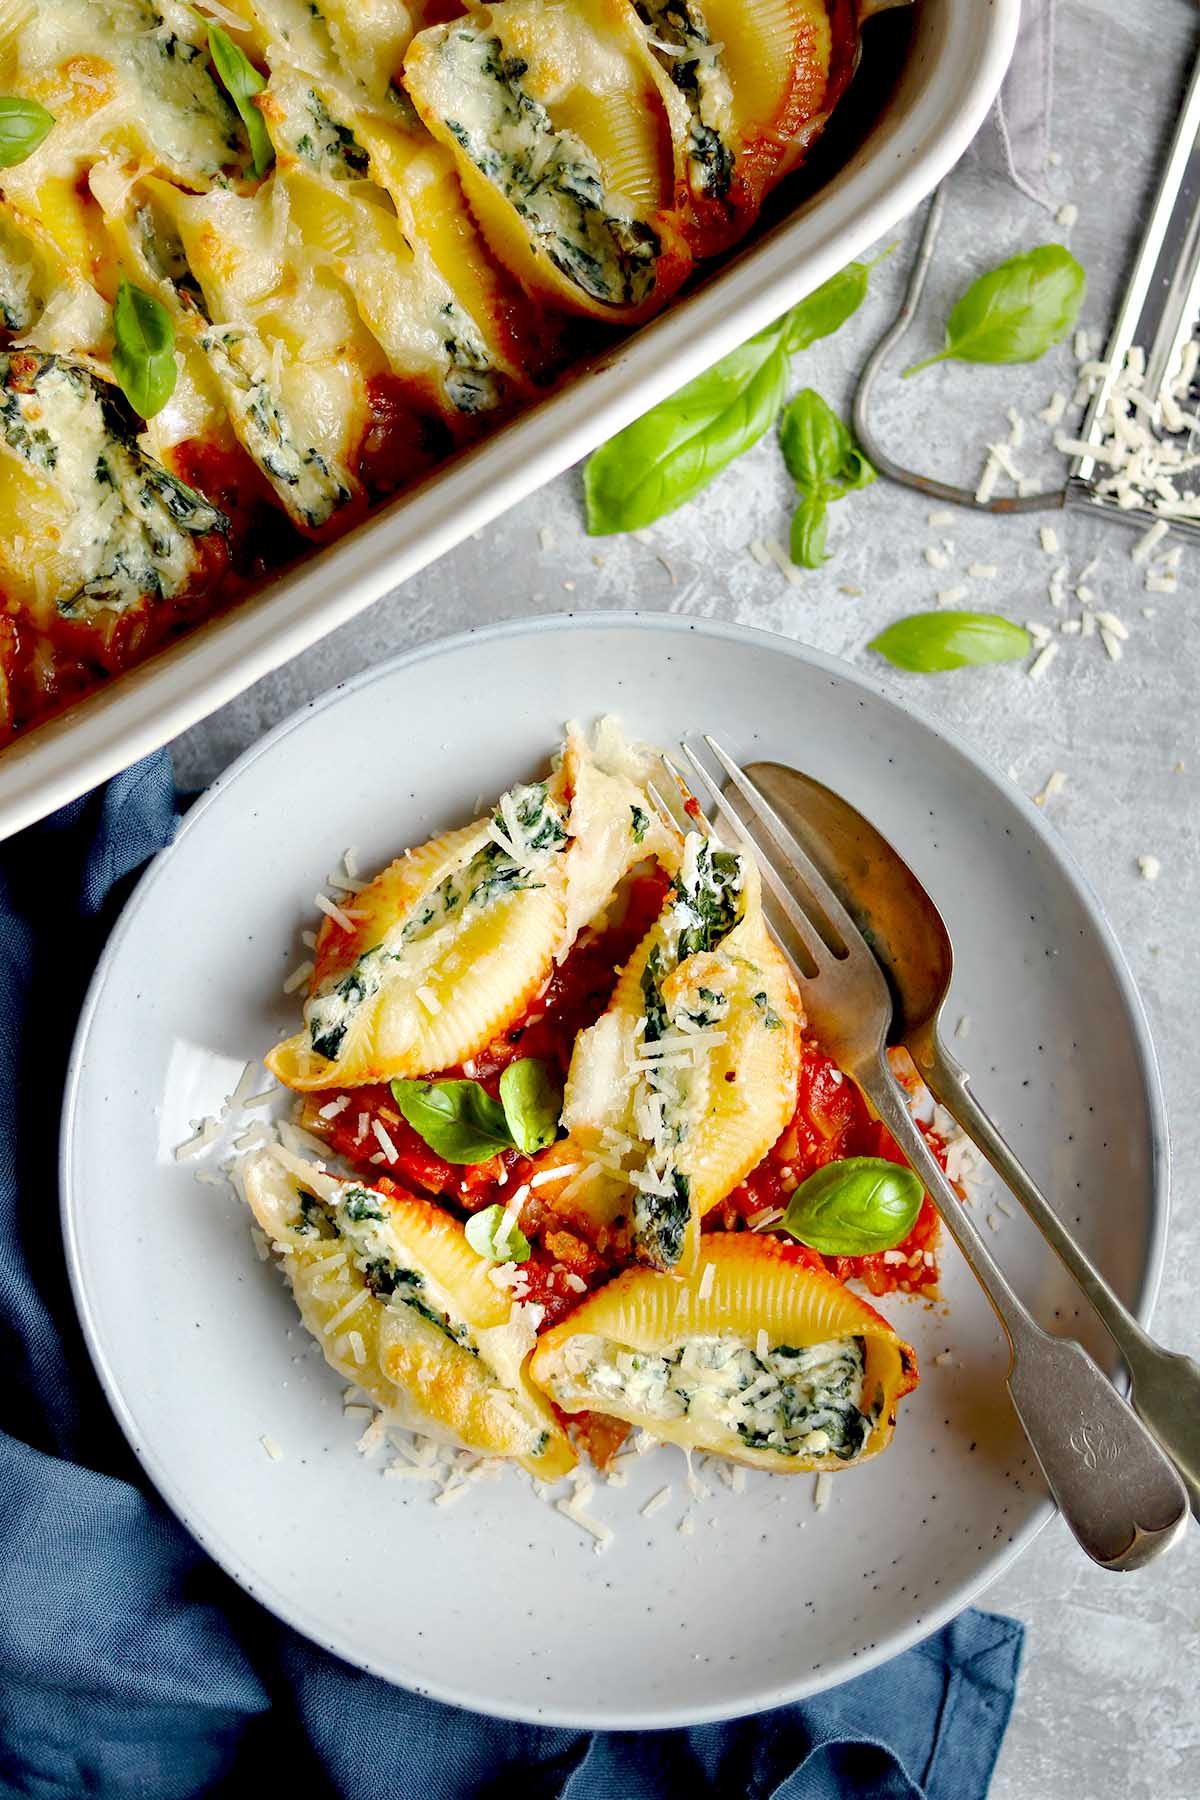 Pasta Shells filled with Spinach and Ricotta in tomato sauce with basil leaves served on a plate.